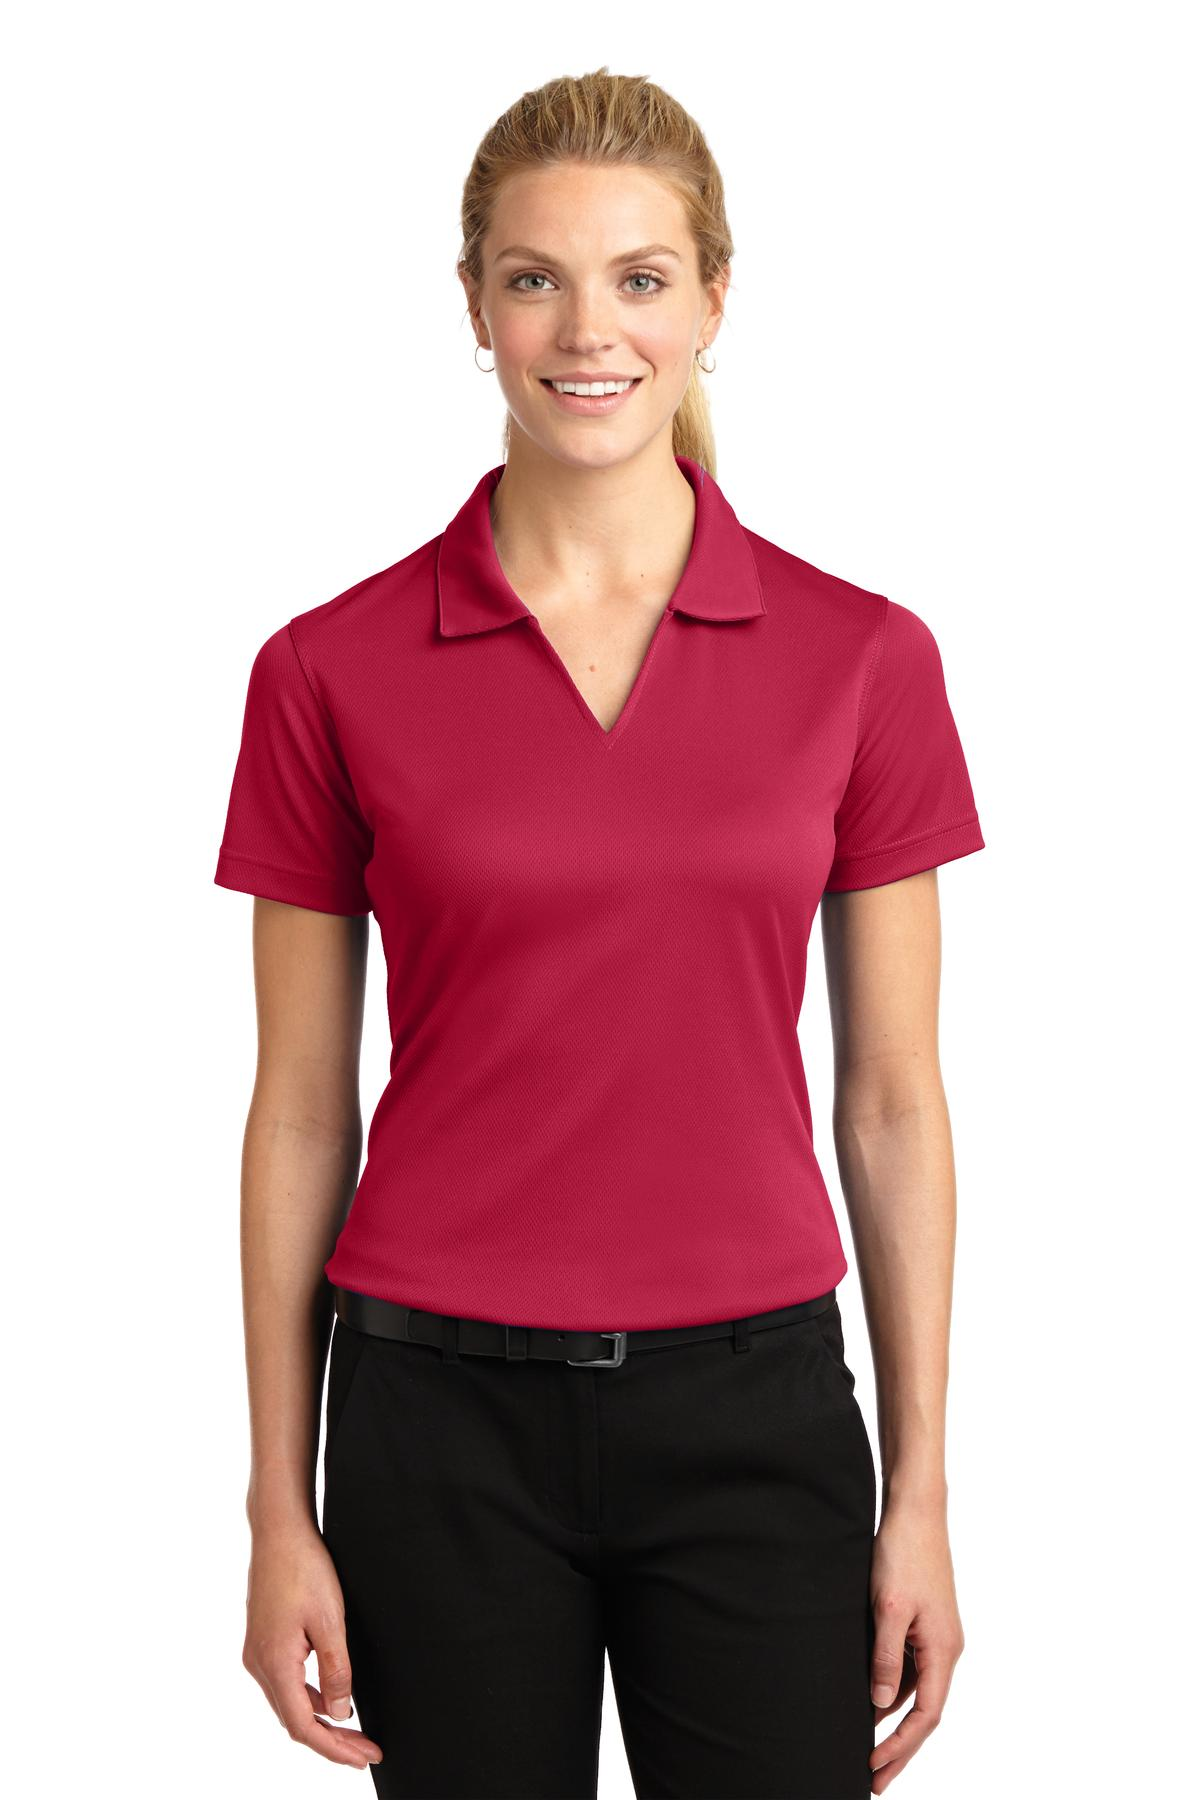 Sport-Tek ®  Ladies Dri-Mesh ®  V-Neck Polo.  L469 - Red